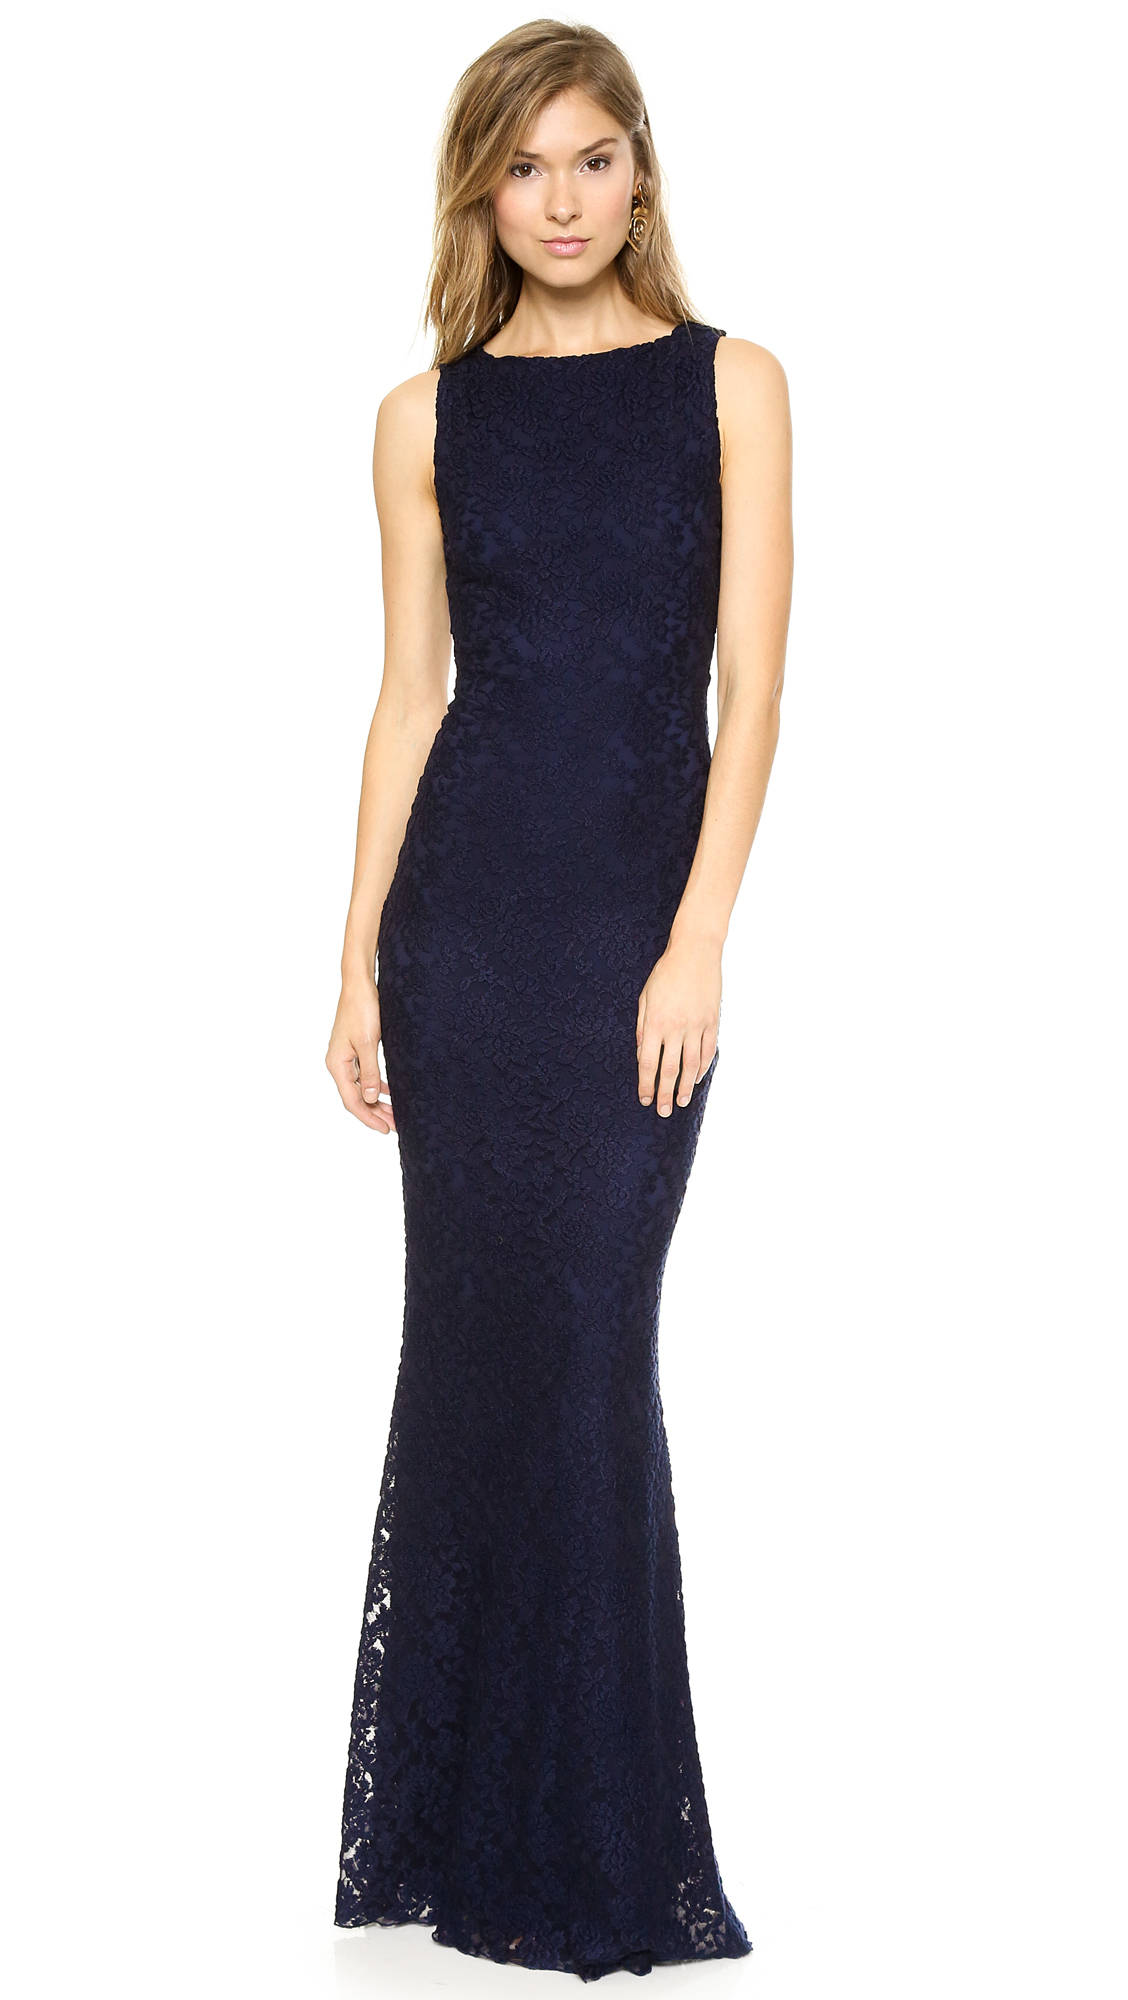 Alice Olivia Sachi Gown Shopbop Save Up To 25 Use Code